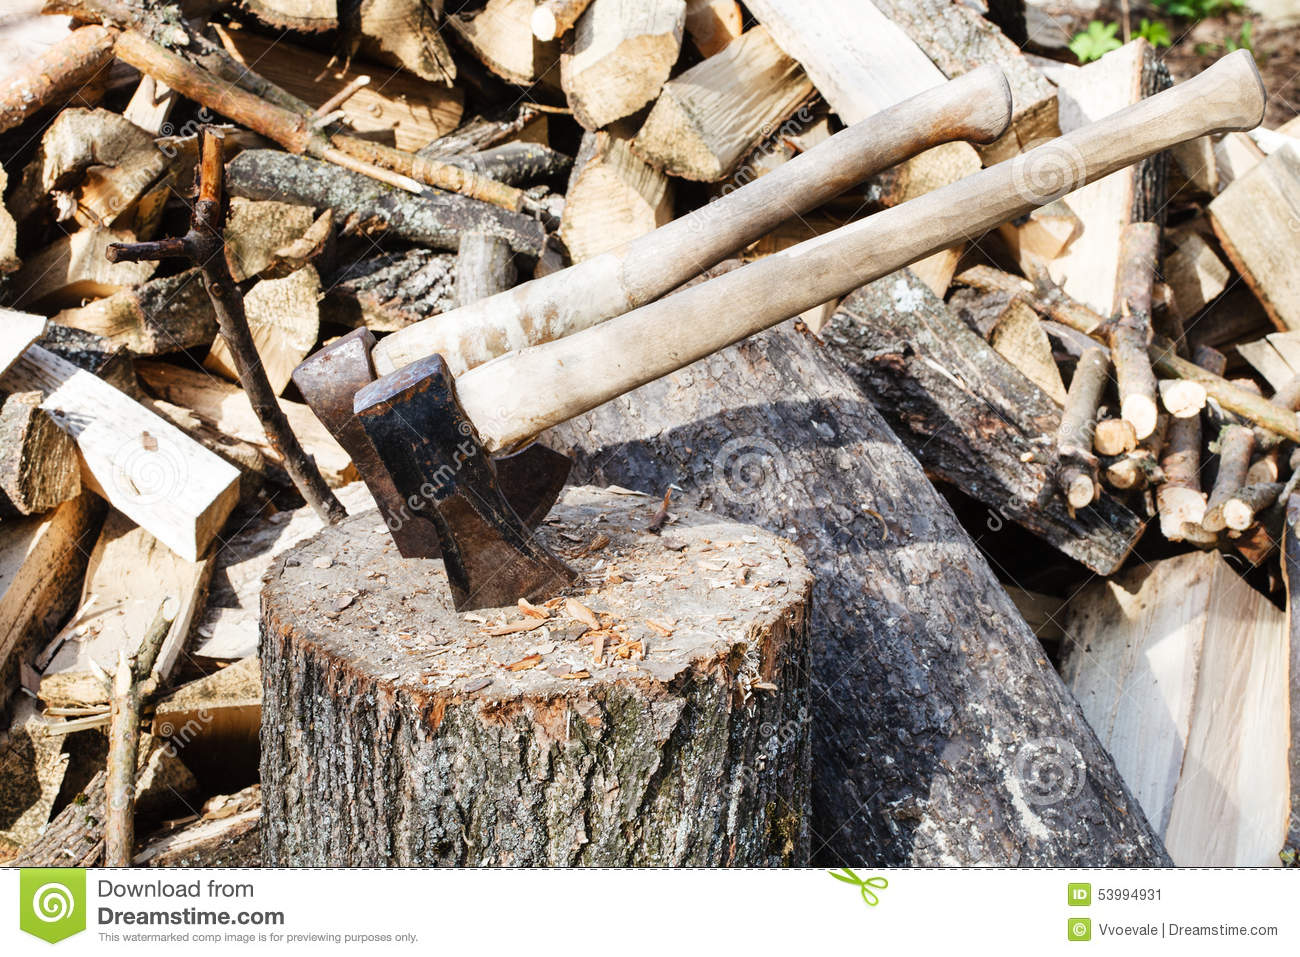 Axe in chopping block and firewood ax pile of royalty